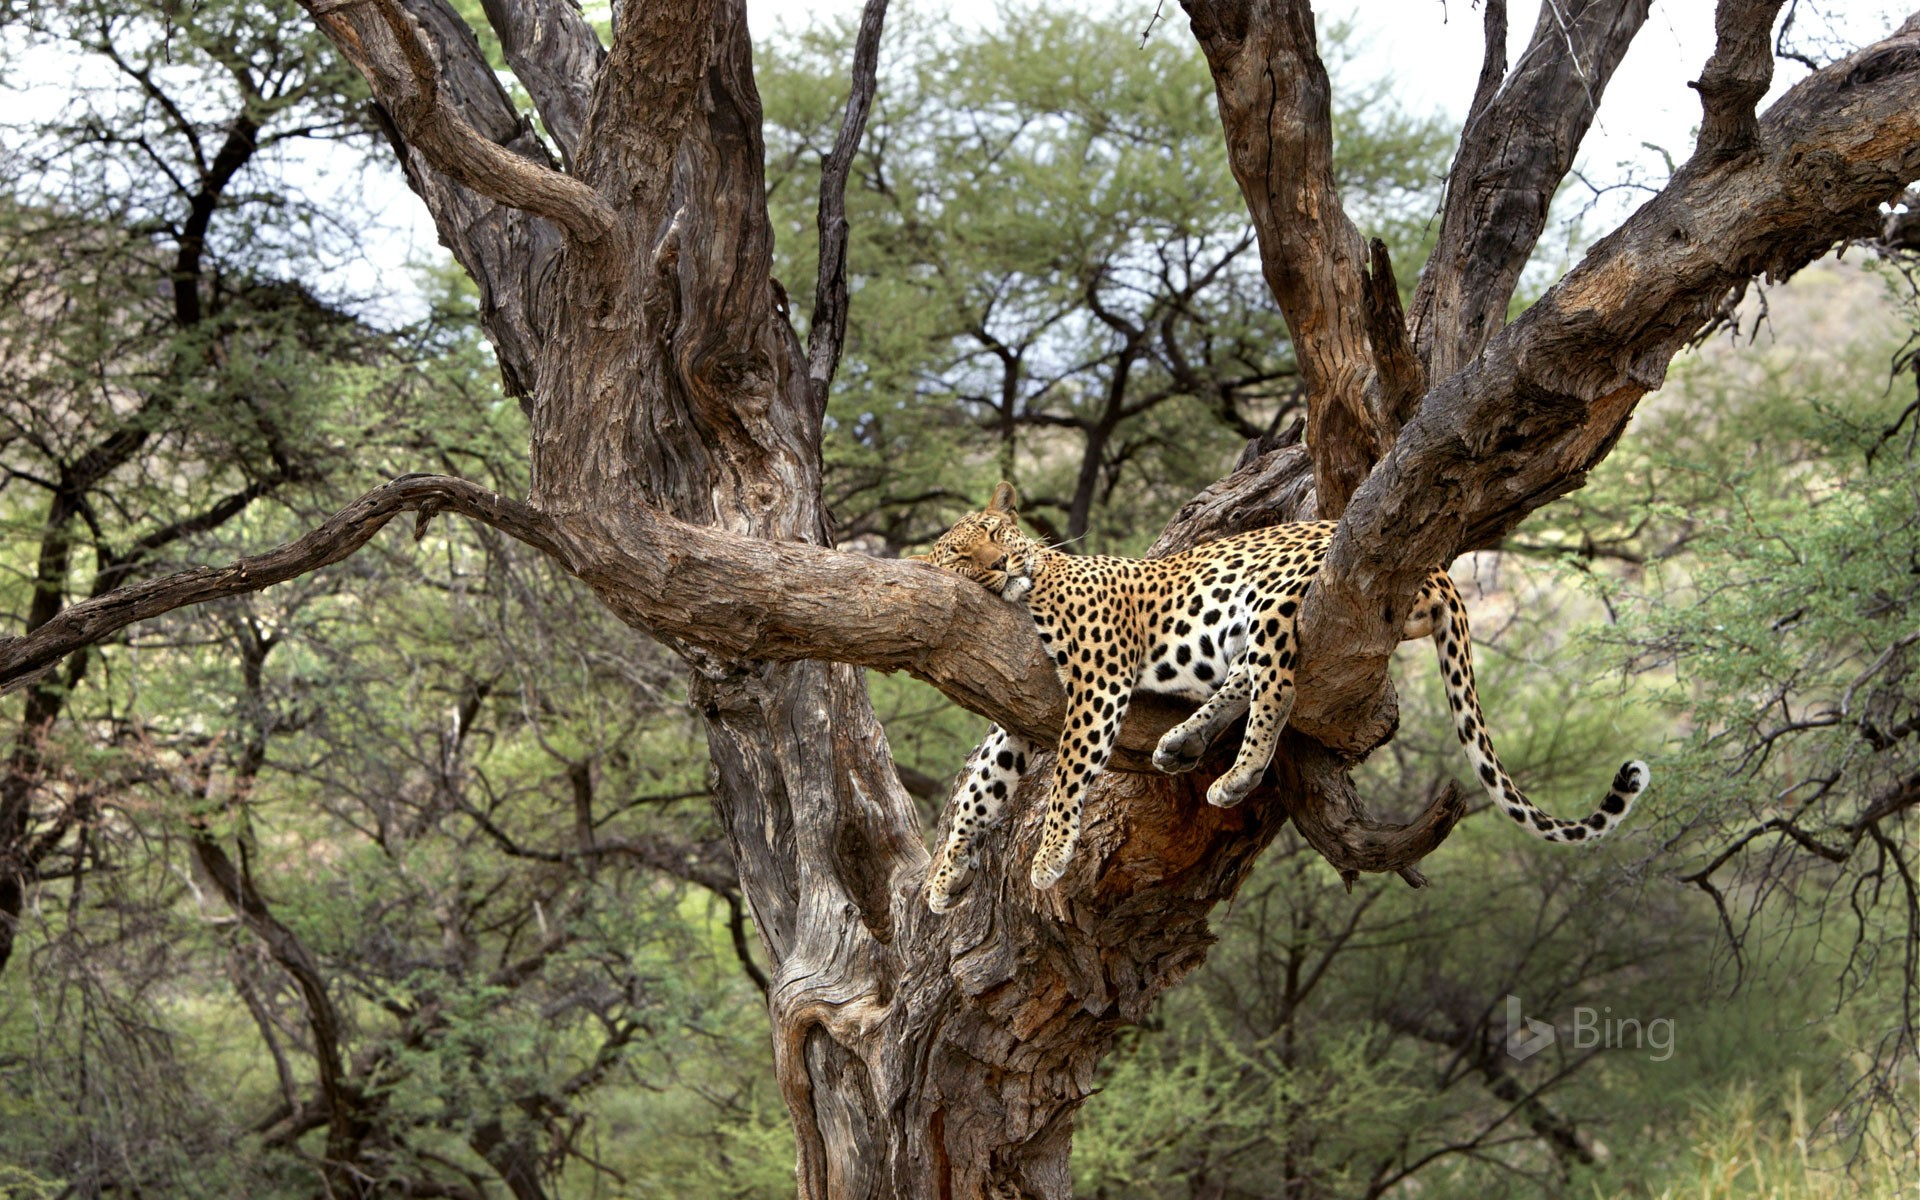 Leopard snoozing in a tree in Namibia